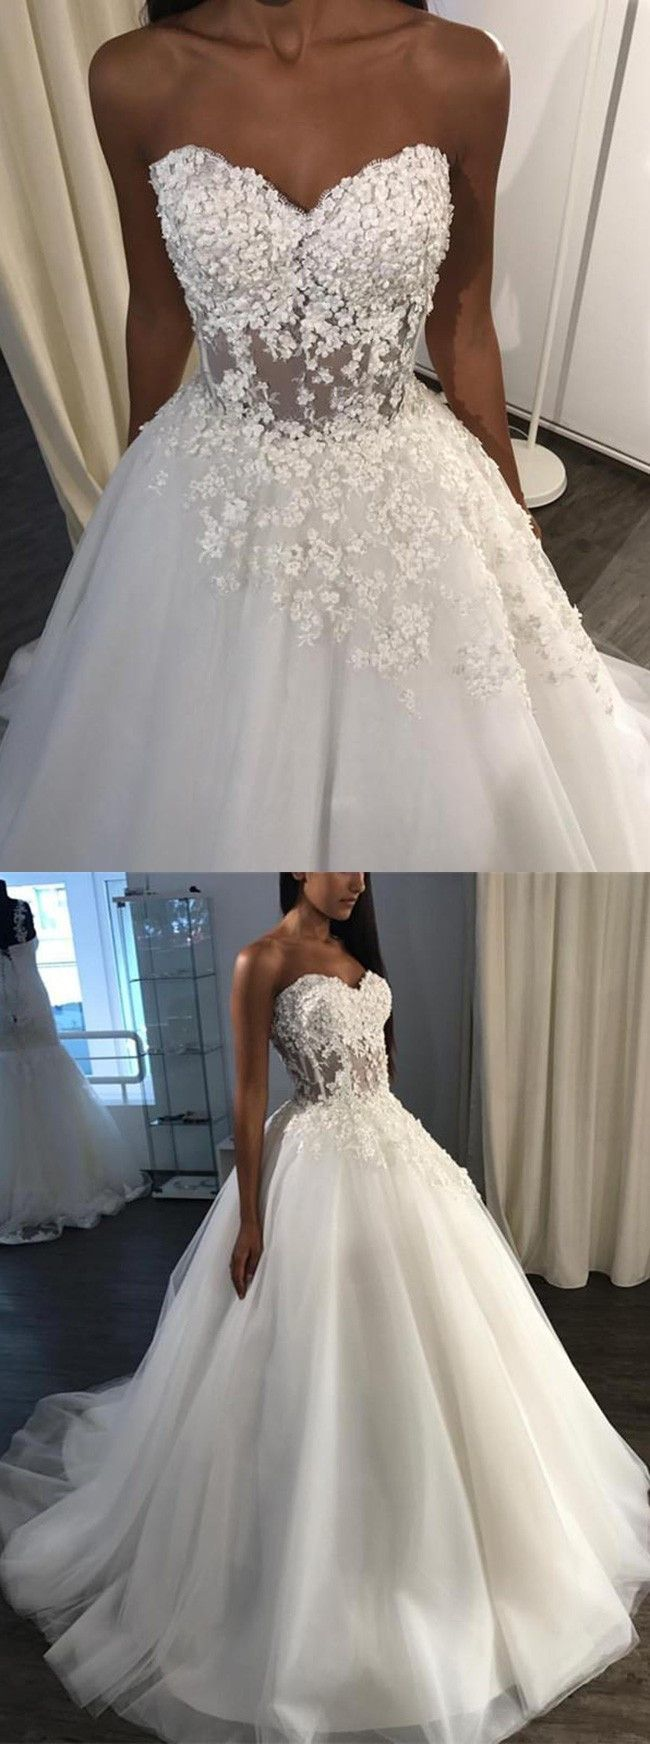 modest sweetheart wedding party dresses with appliques, fashion formal wedding gowns, #wedding